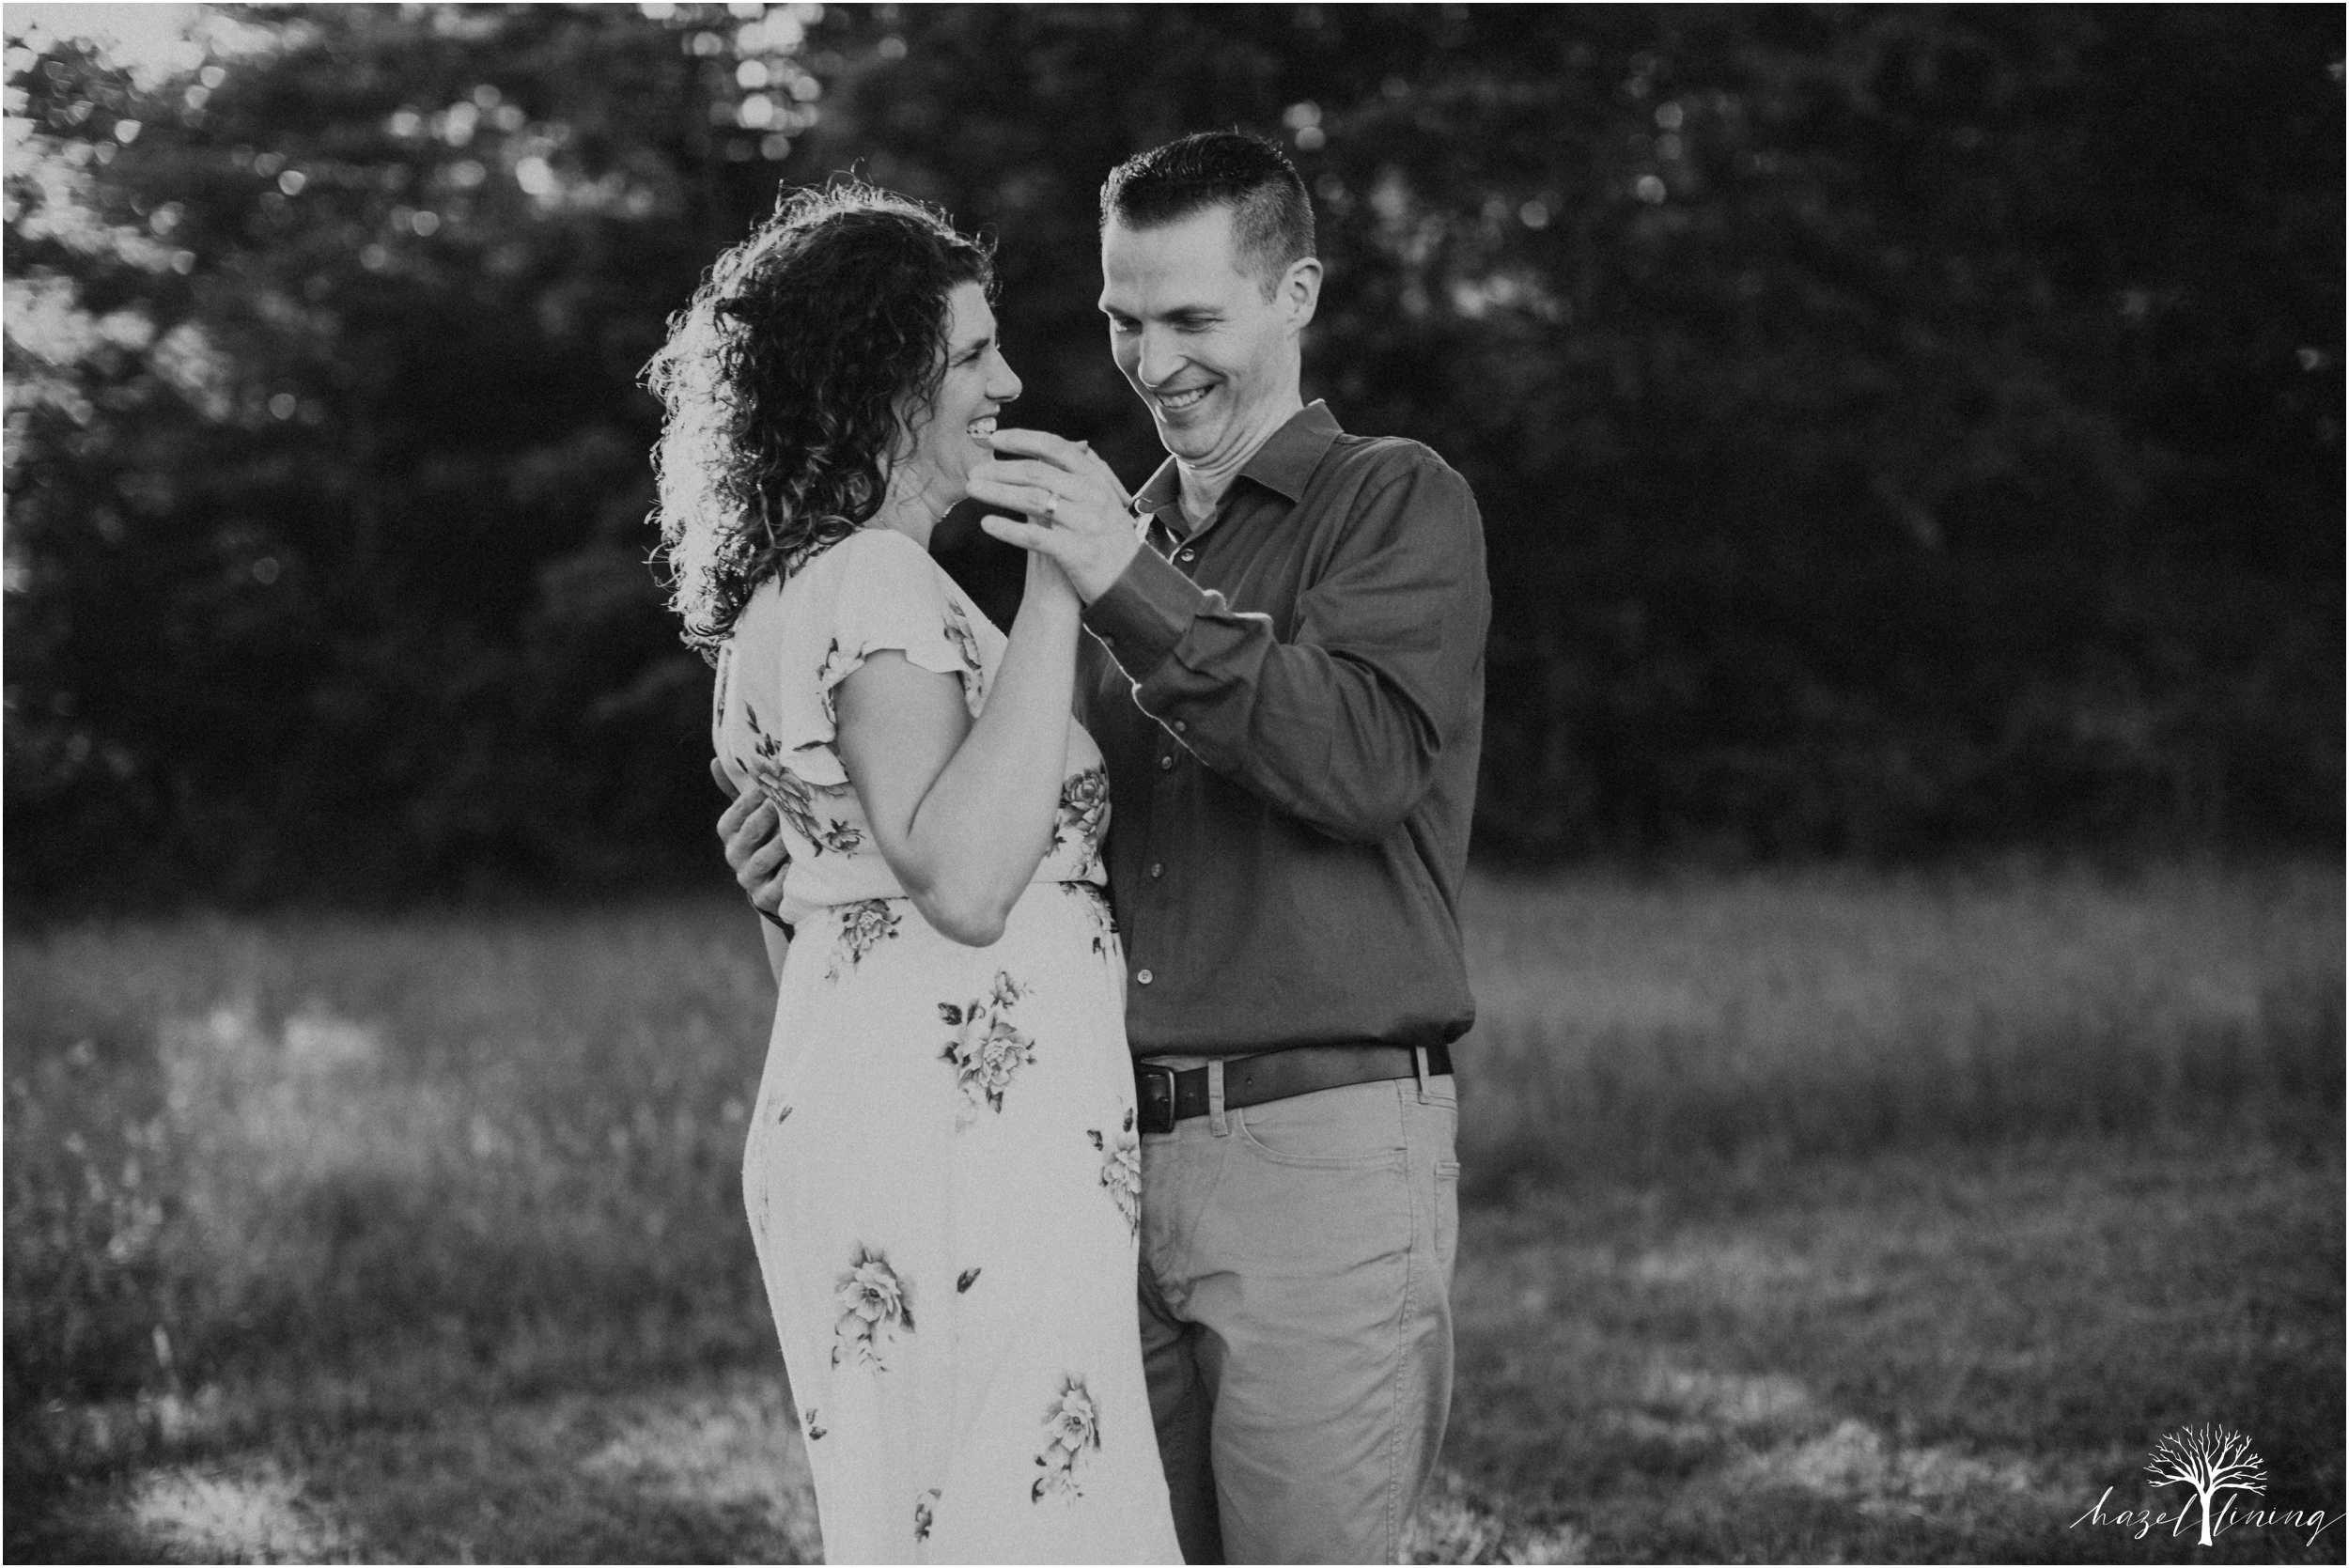 pete-rachelle-sawadski-20-year-anniversary-portrait-session-hazel-lining-photography-destination-elopement-wedding-engagement-photography_0282.jpg